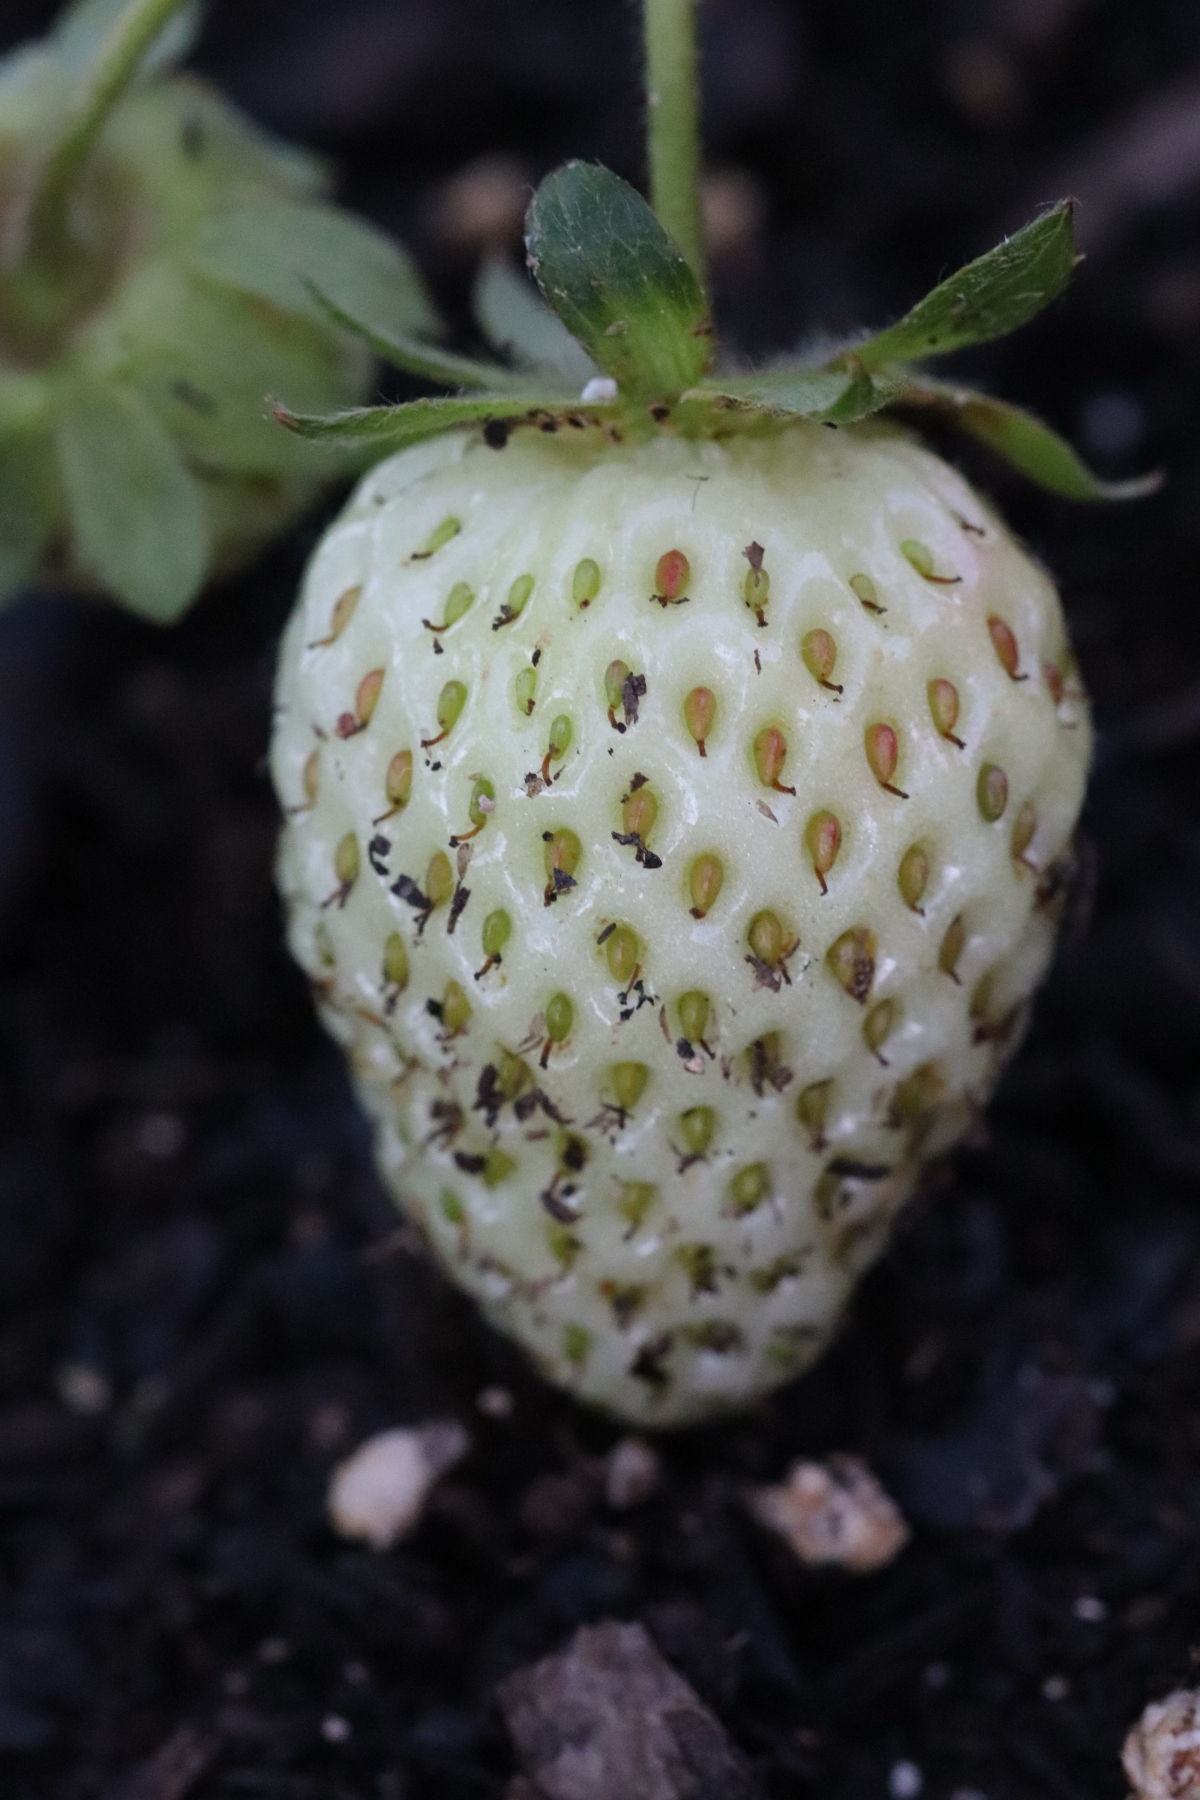 Not Yet Ripe Strawberry